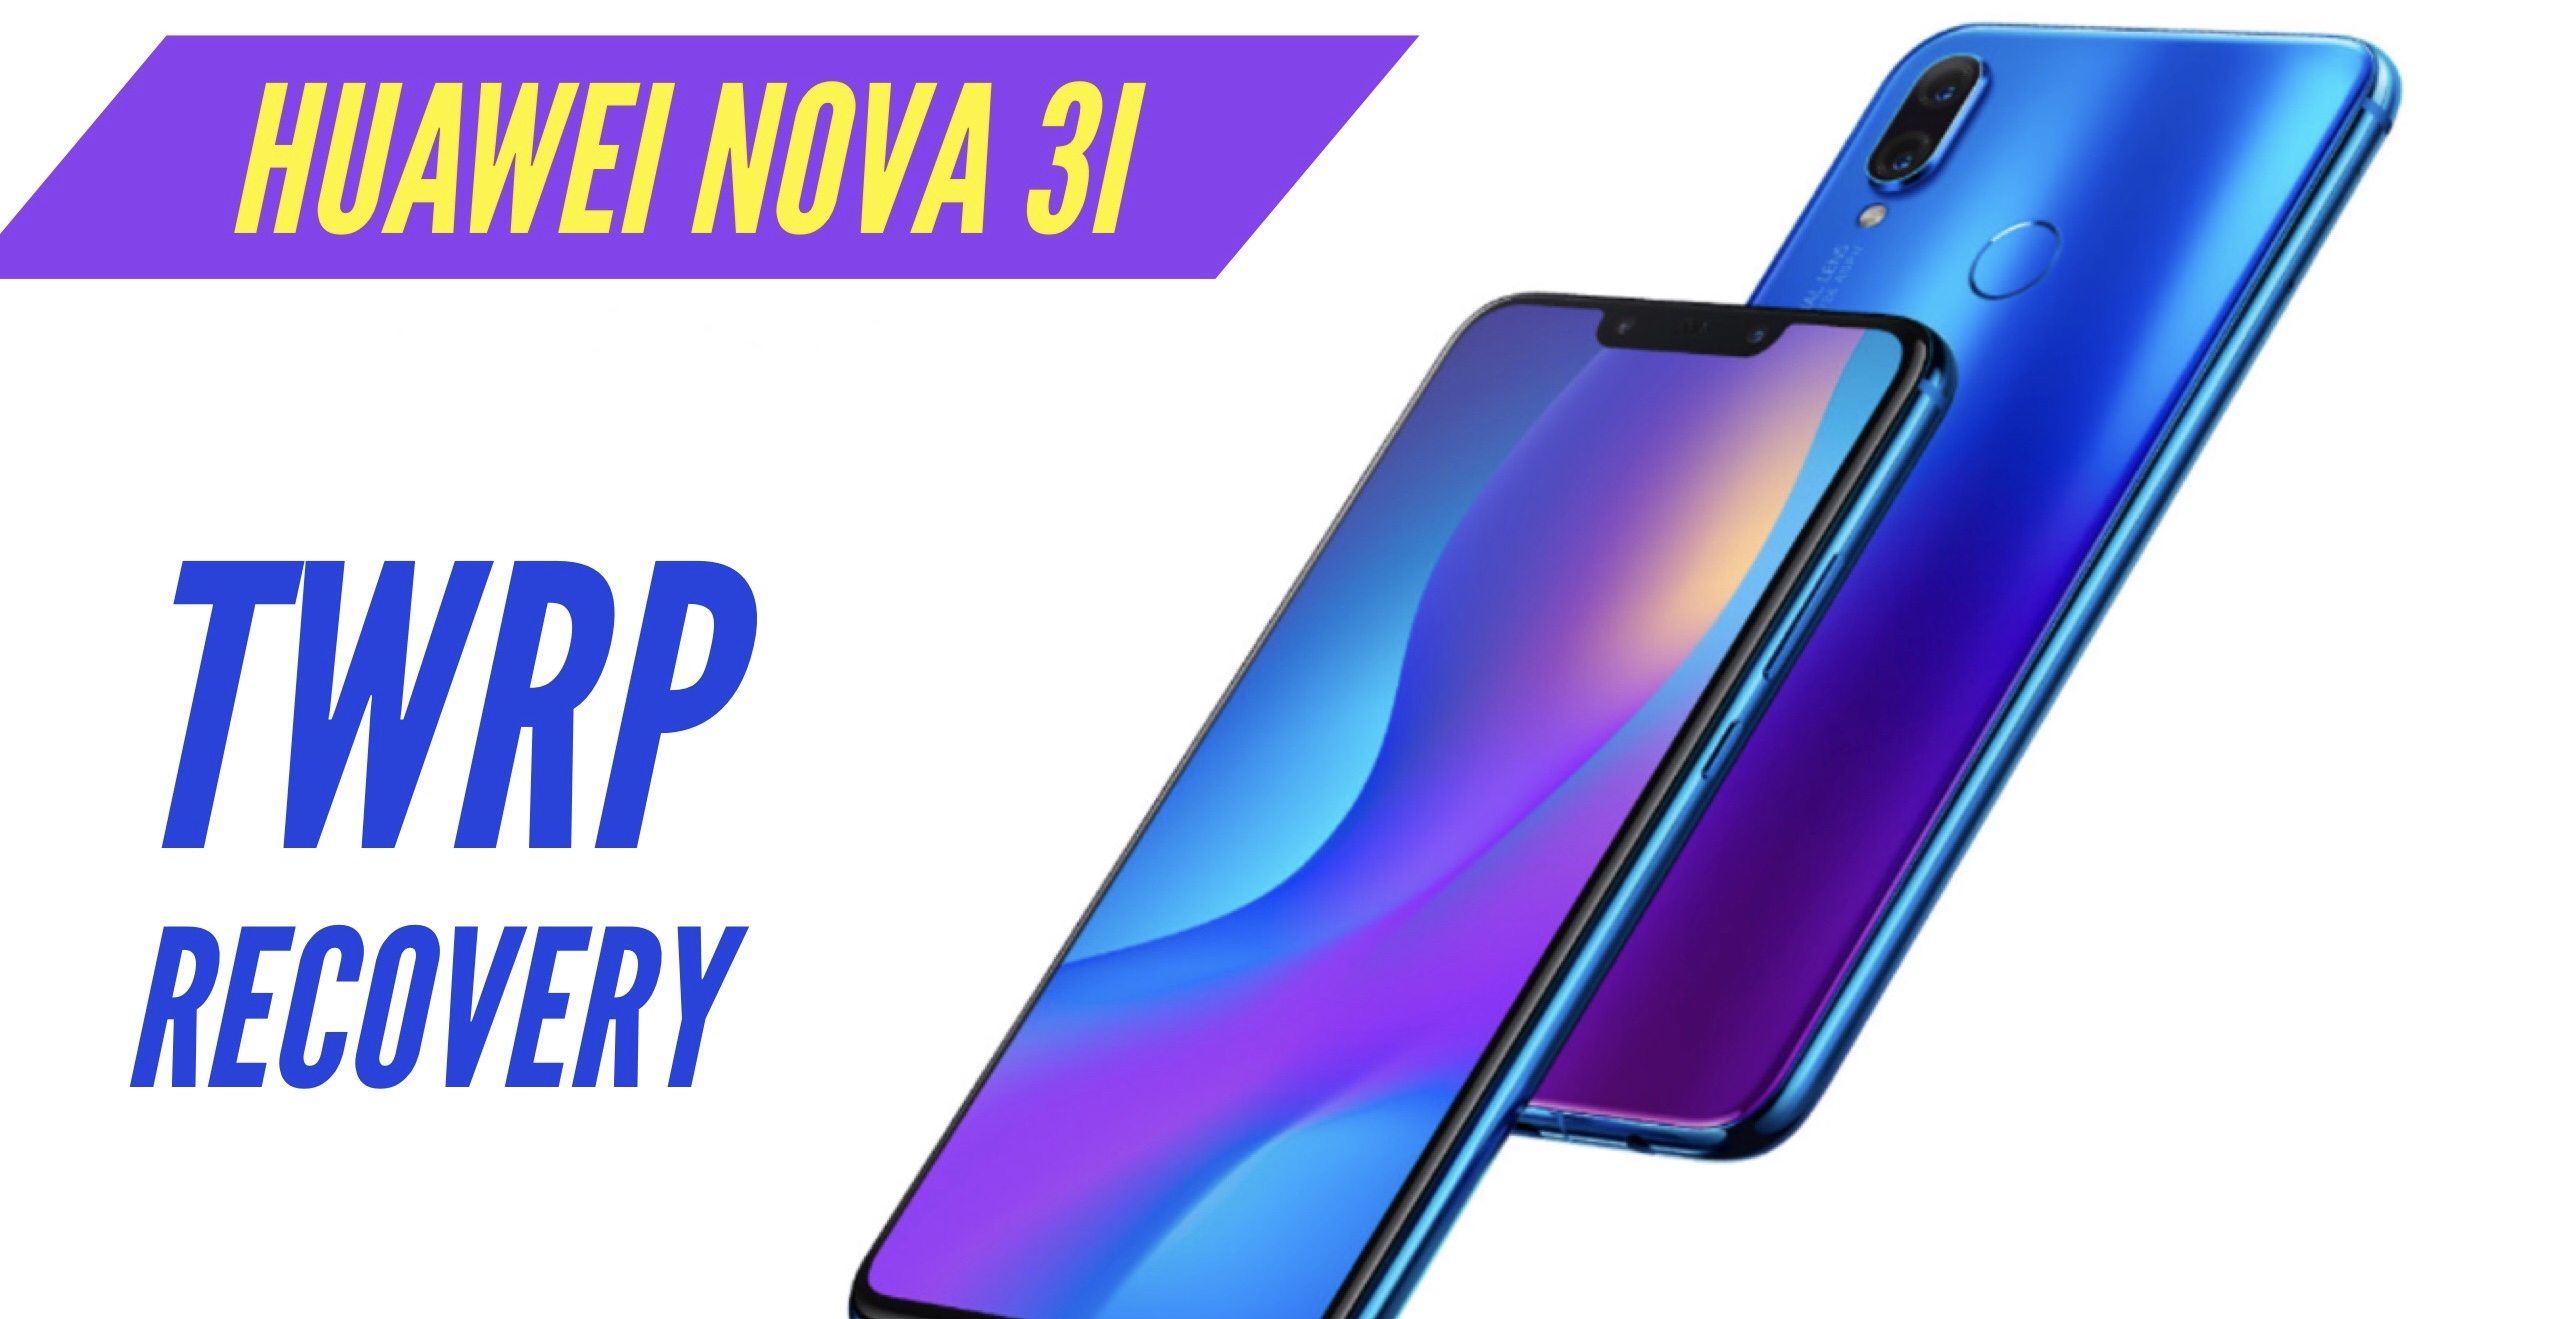 How to Install TWRP Recovery on Huawei Nova 3i? Step By Step GUIDE!